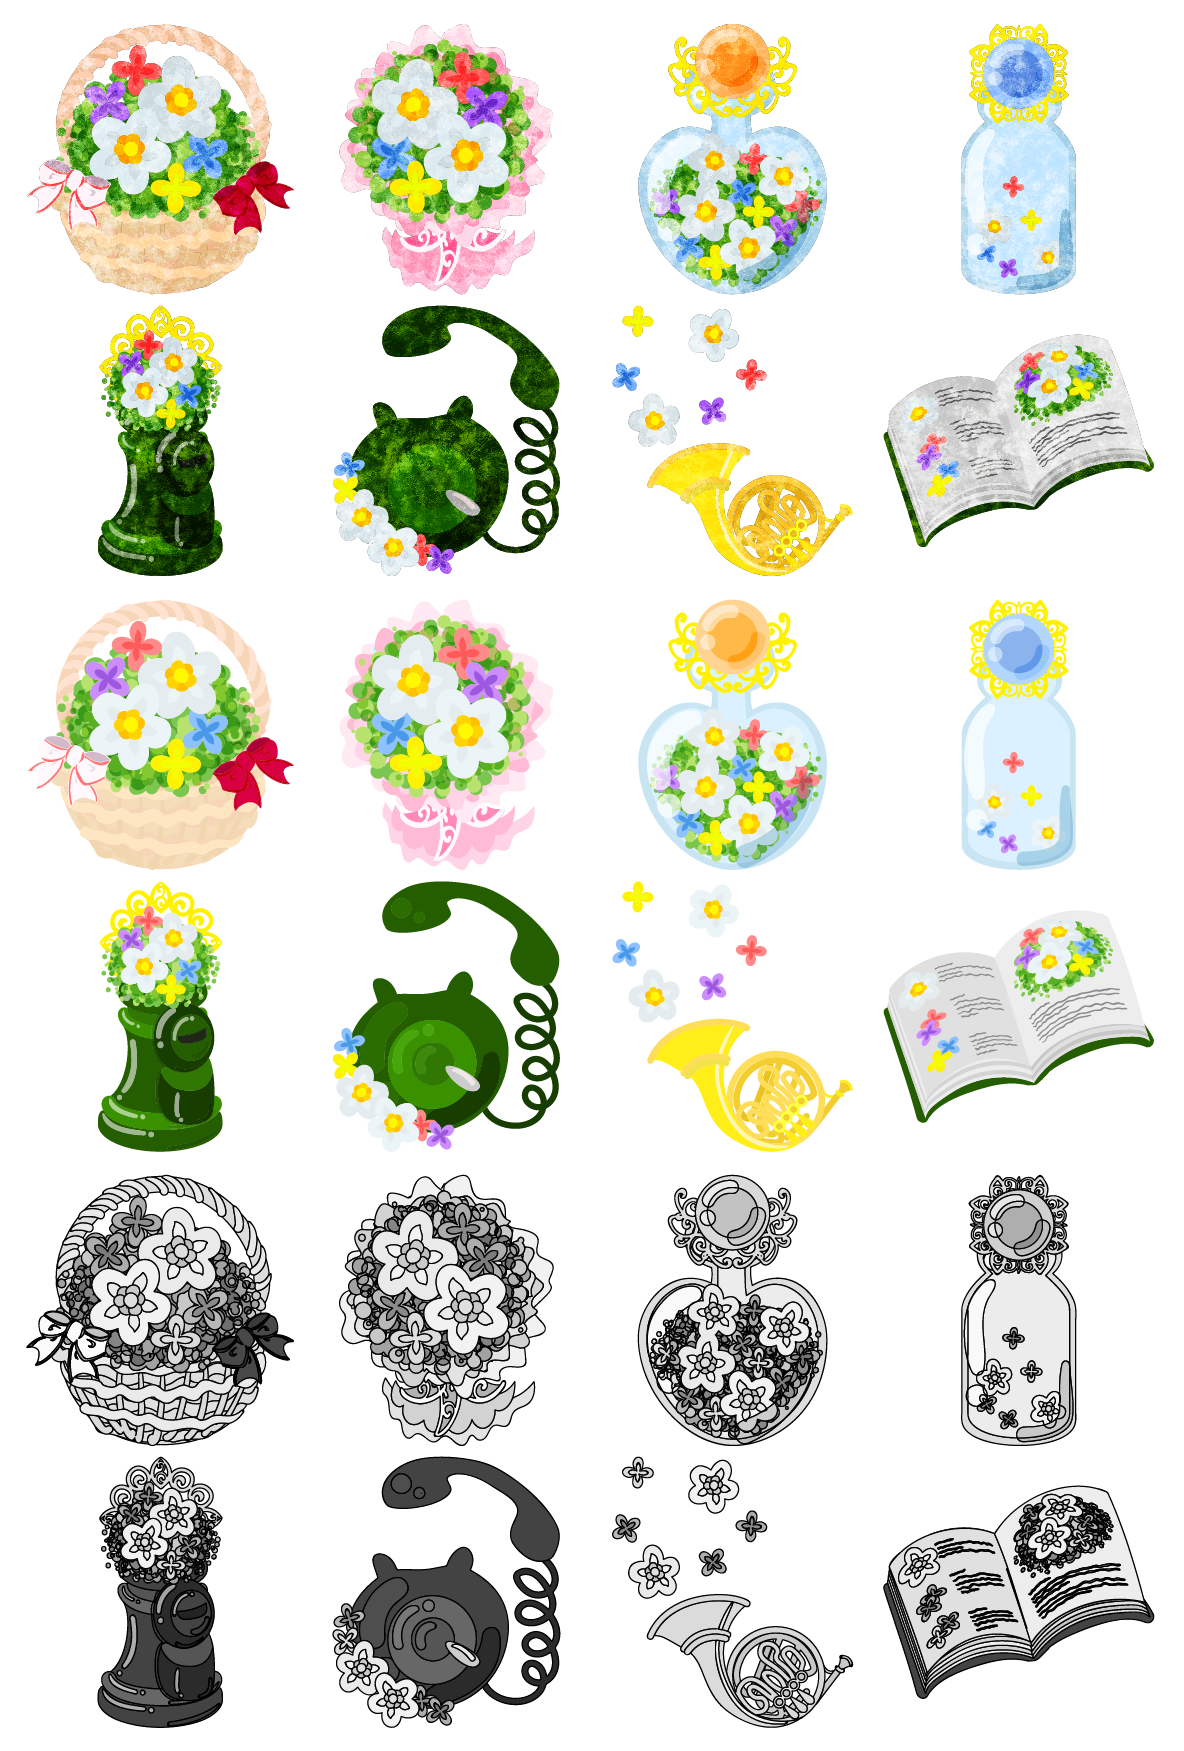 the cute icons of small flowers by atelierbw on deviantart